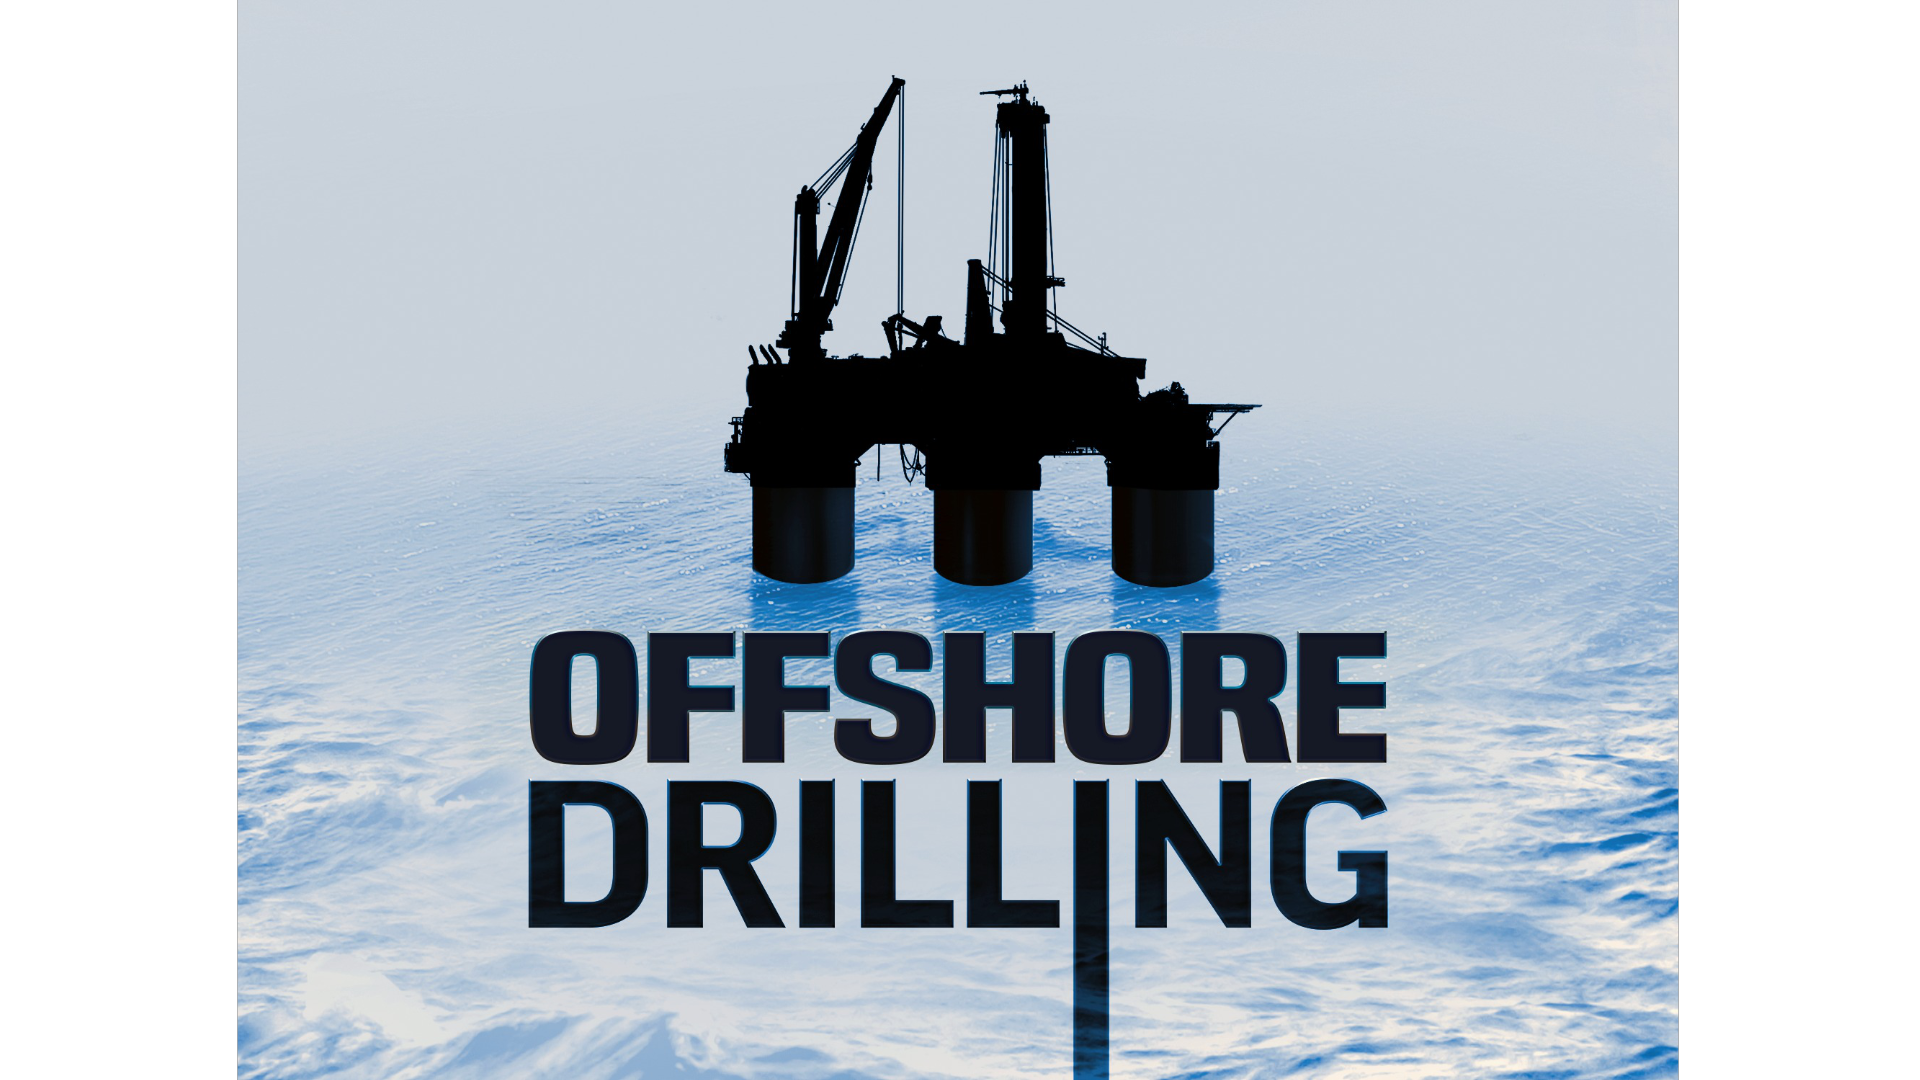 off shore drilling_451792